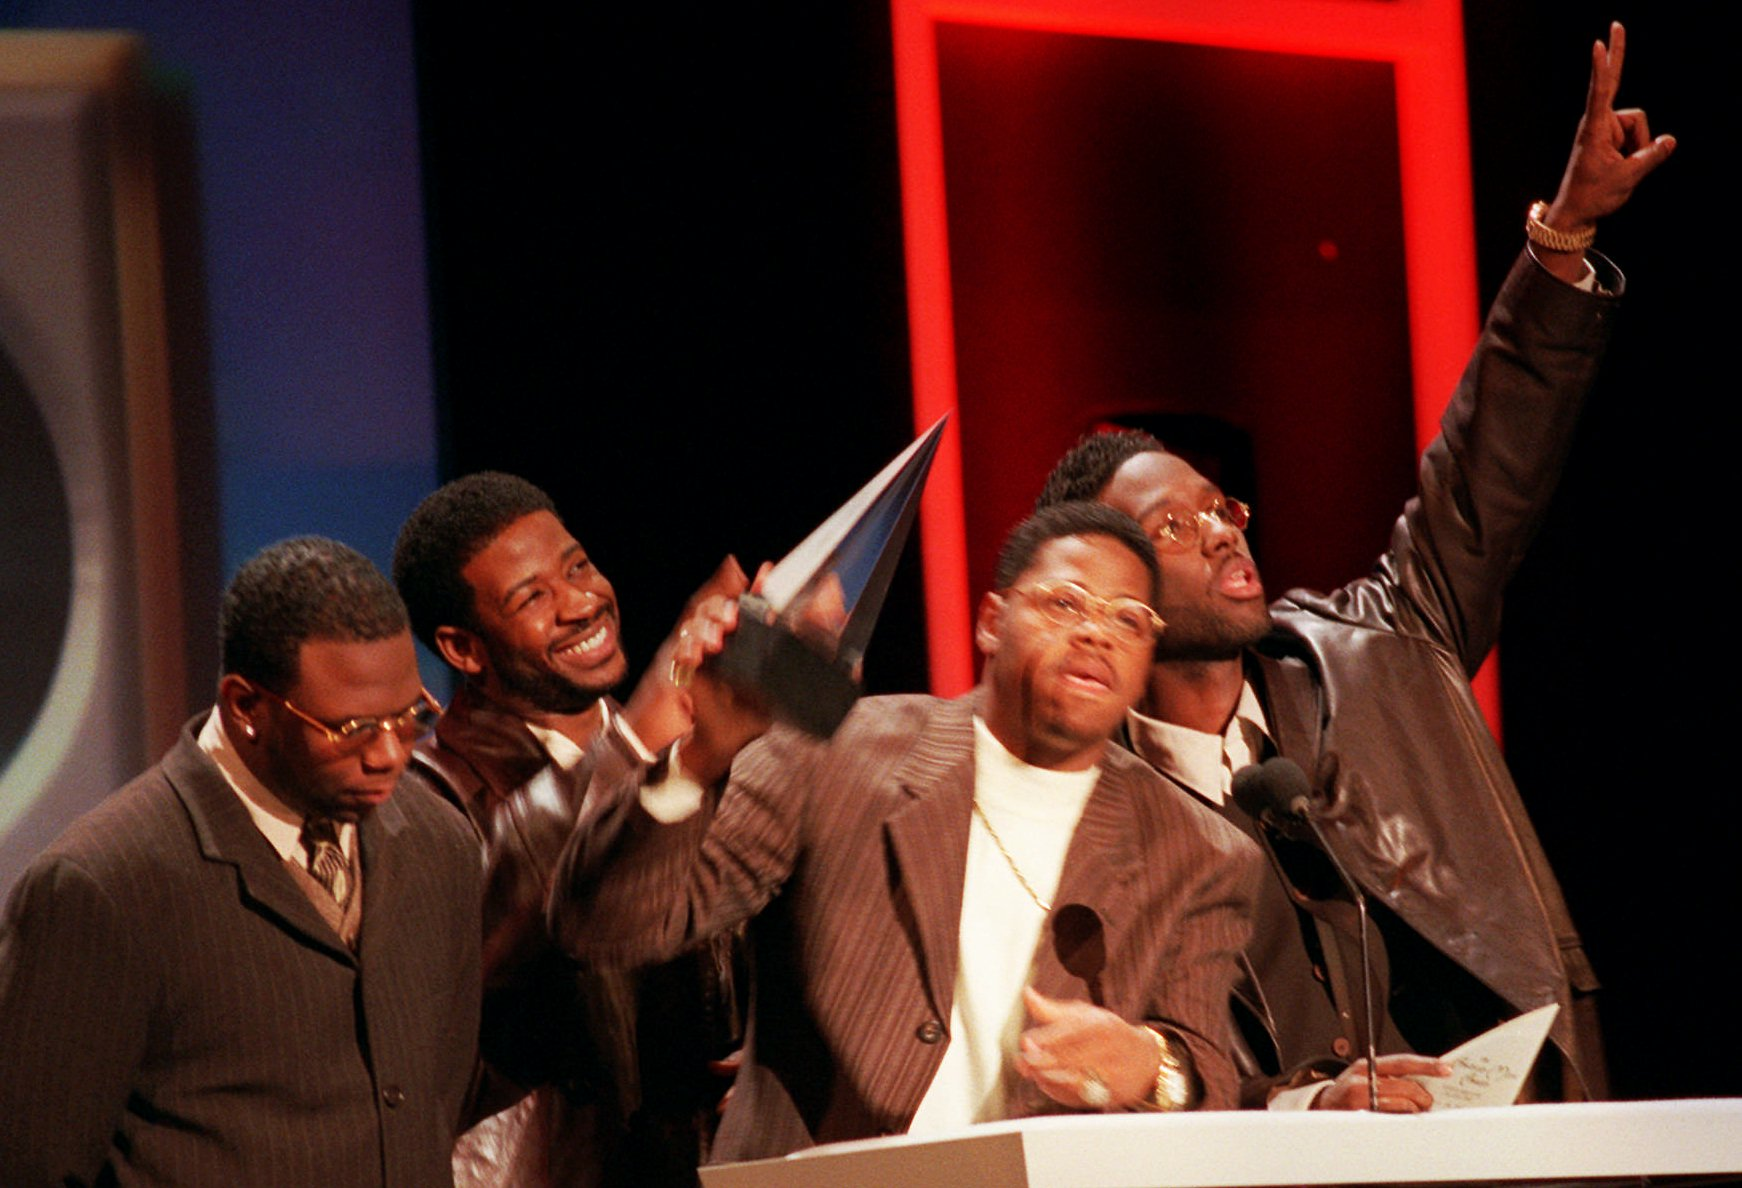 Boyz II Men, left to right, Wanya Morris, Nate Morris, Michael McCary, and Shawn Stockman show off their award for Best Soul Album at the 23rd Annual American Music Awards at the Shrine Auditorium in Los Angeles Monday, Jan. 29, 1996. (AP Photo/Kevork Djansezian)